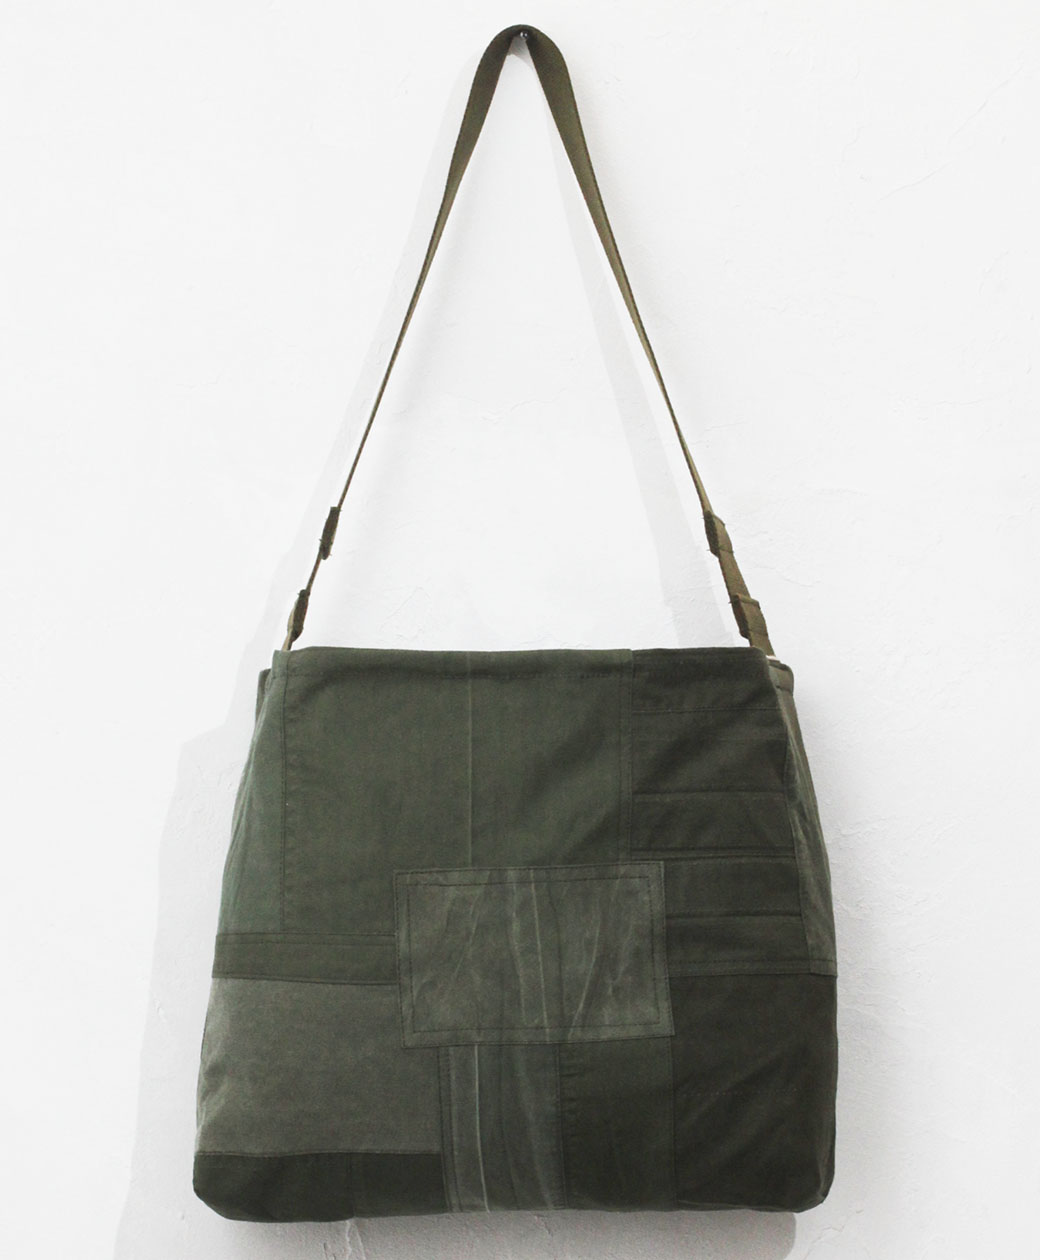 hobo DELIVERY BAG UPCYCLED US ARMY CLOTH(OLIVE)